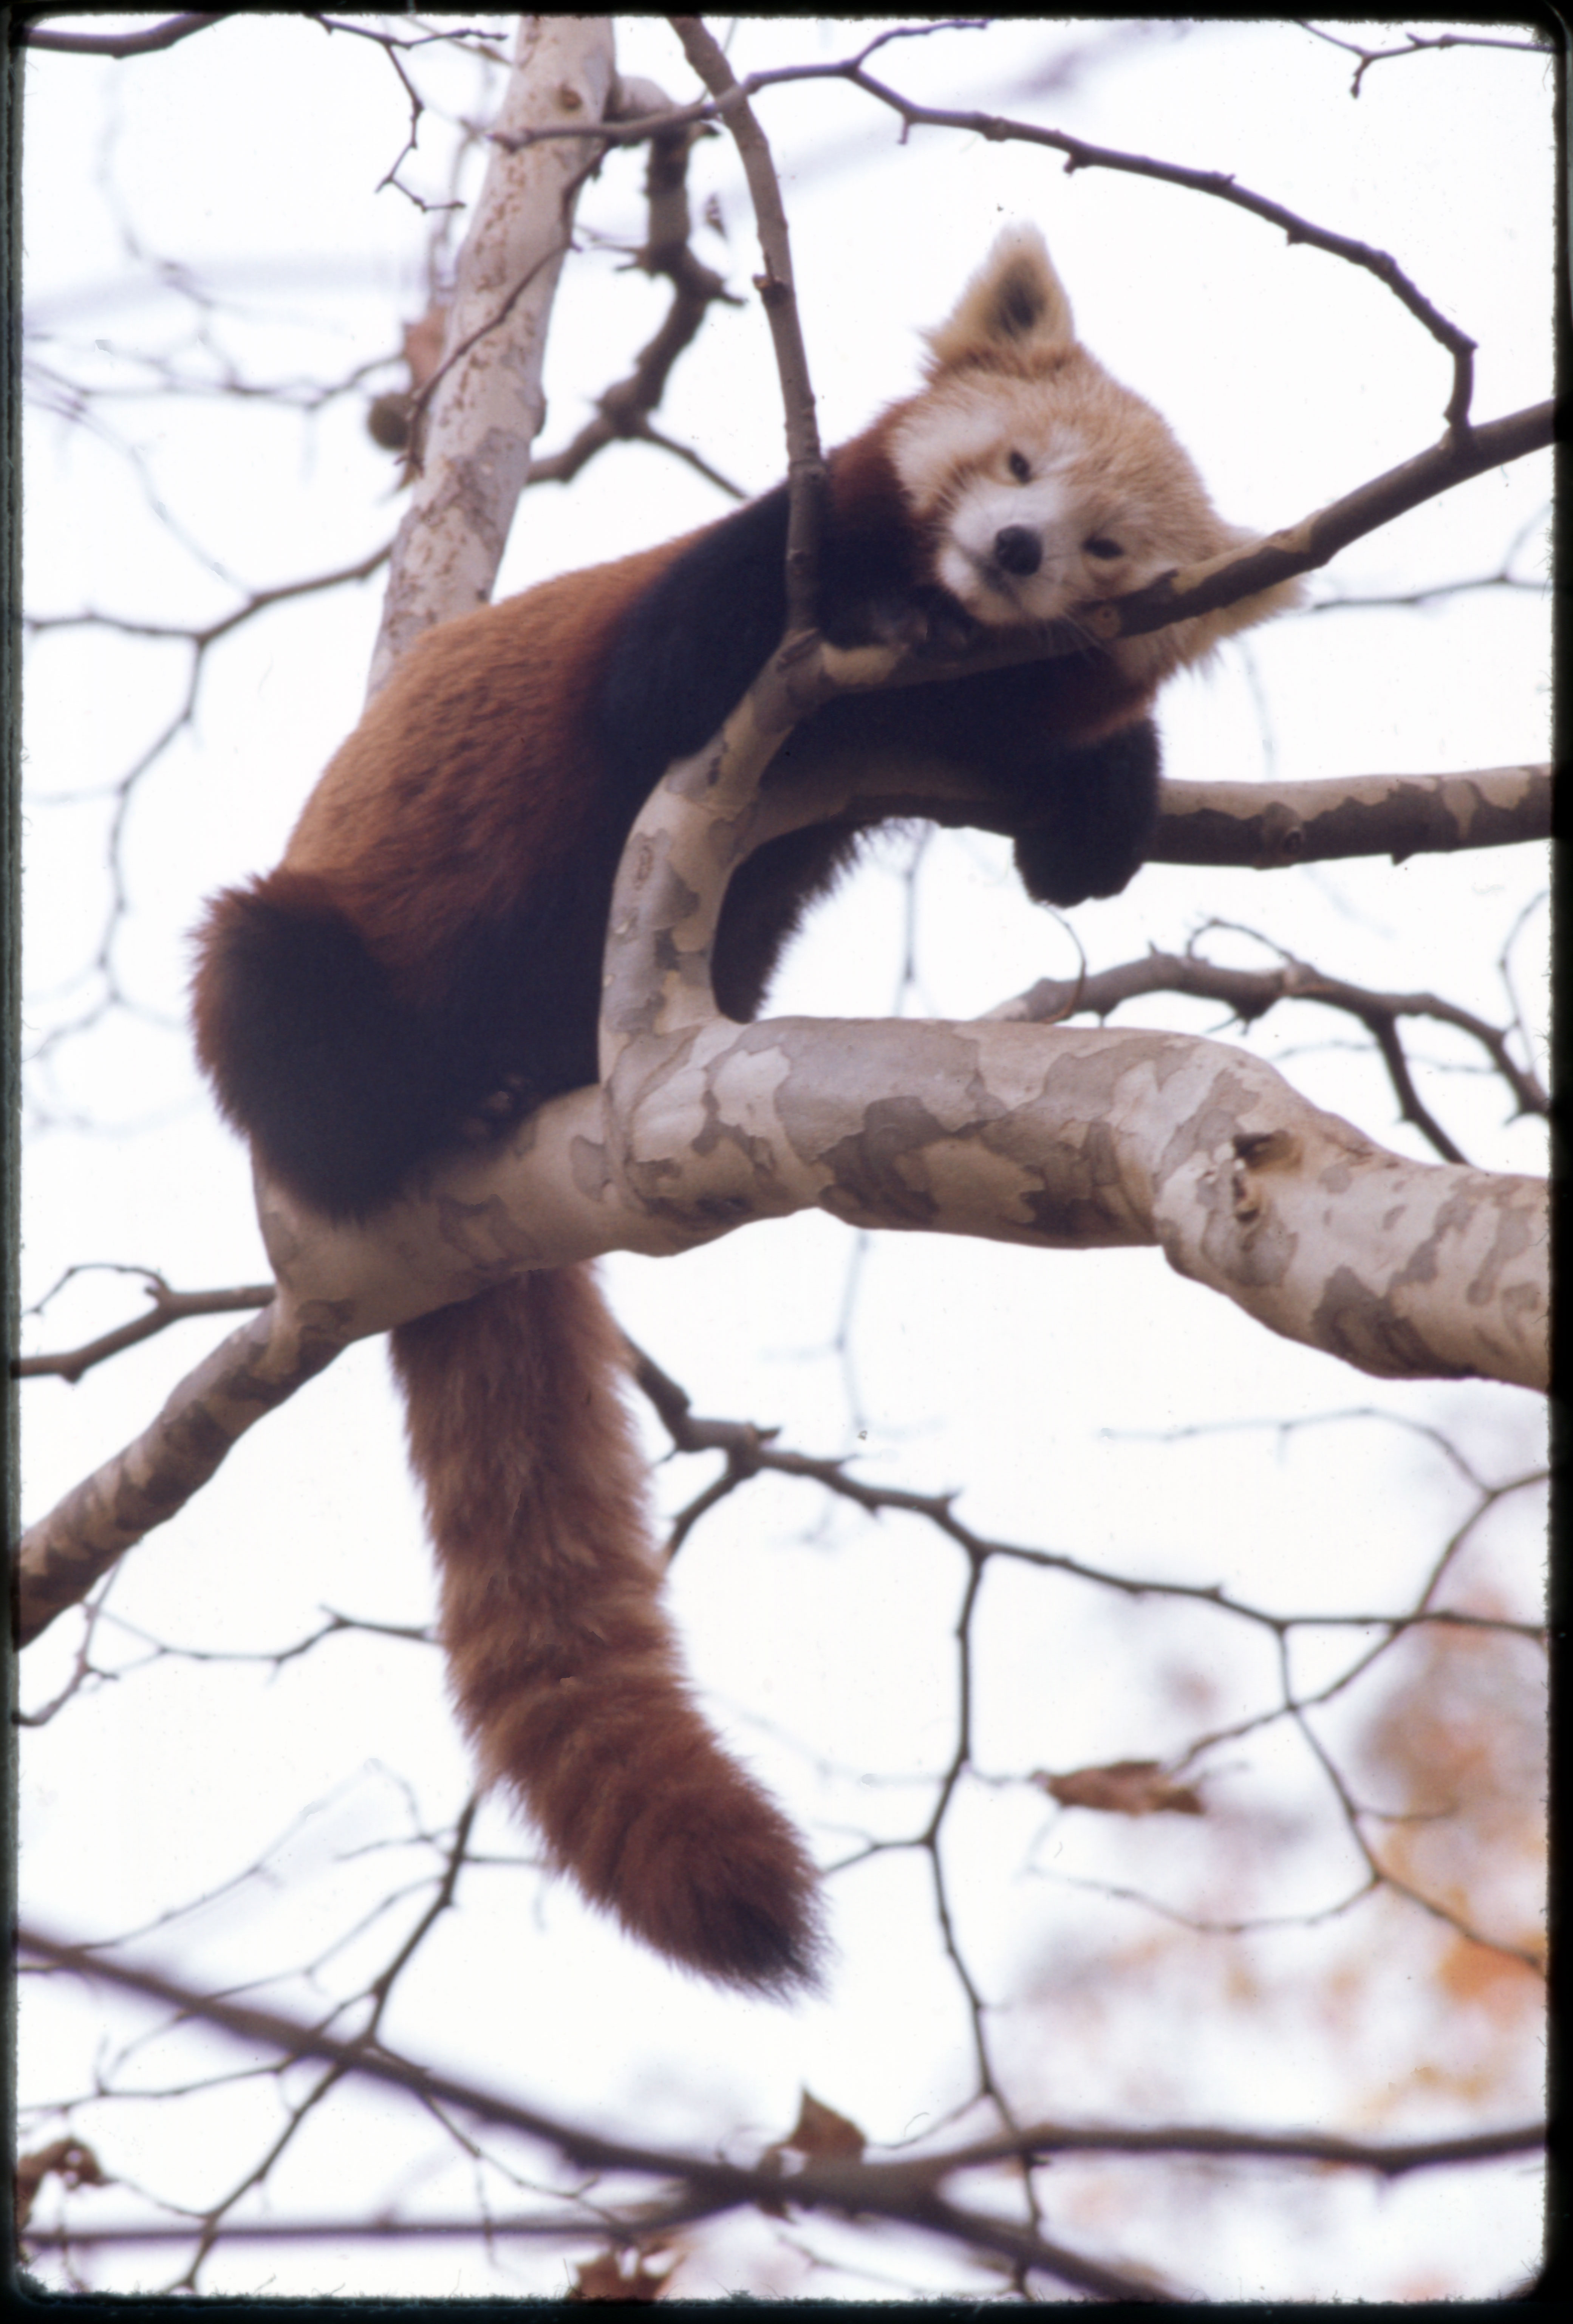 Red Panda, or Lesser Panda, at National Zoological Park